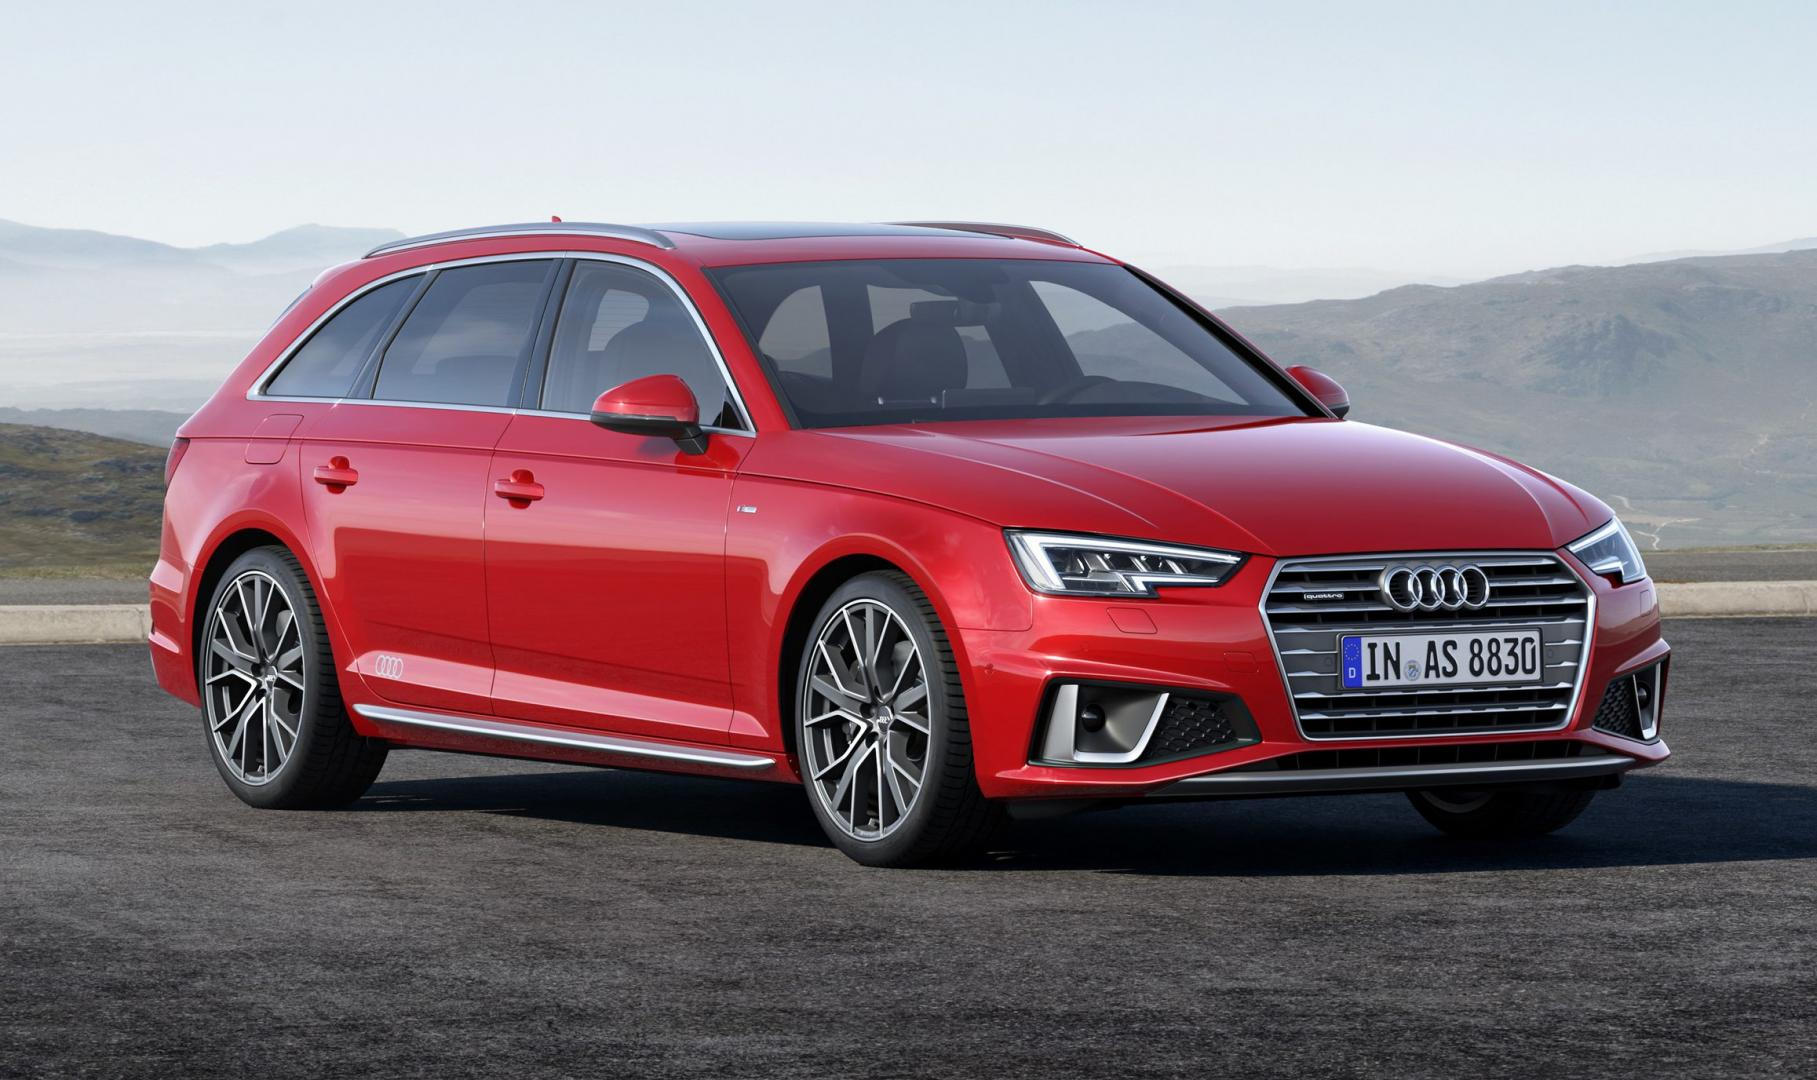 Audi A4 Avant Misano Red S Line